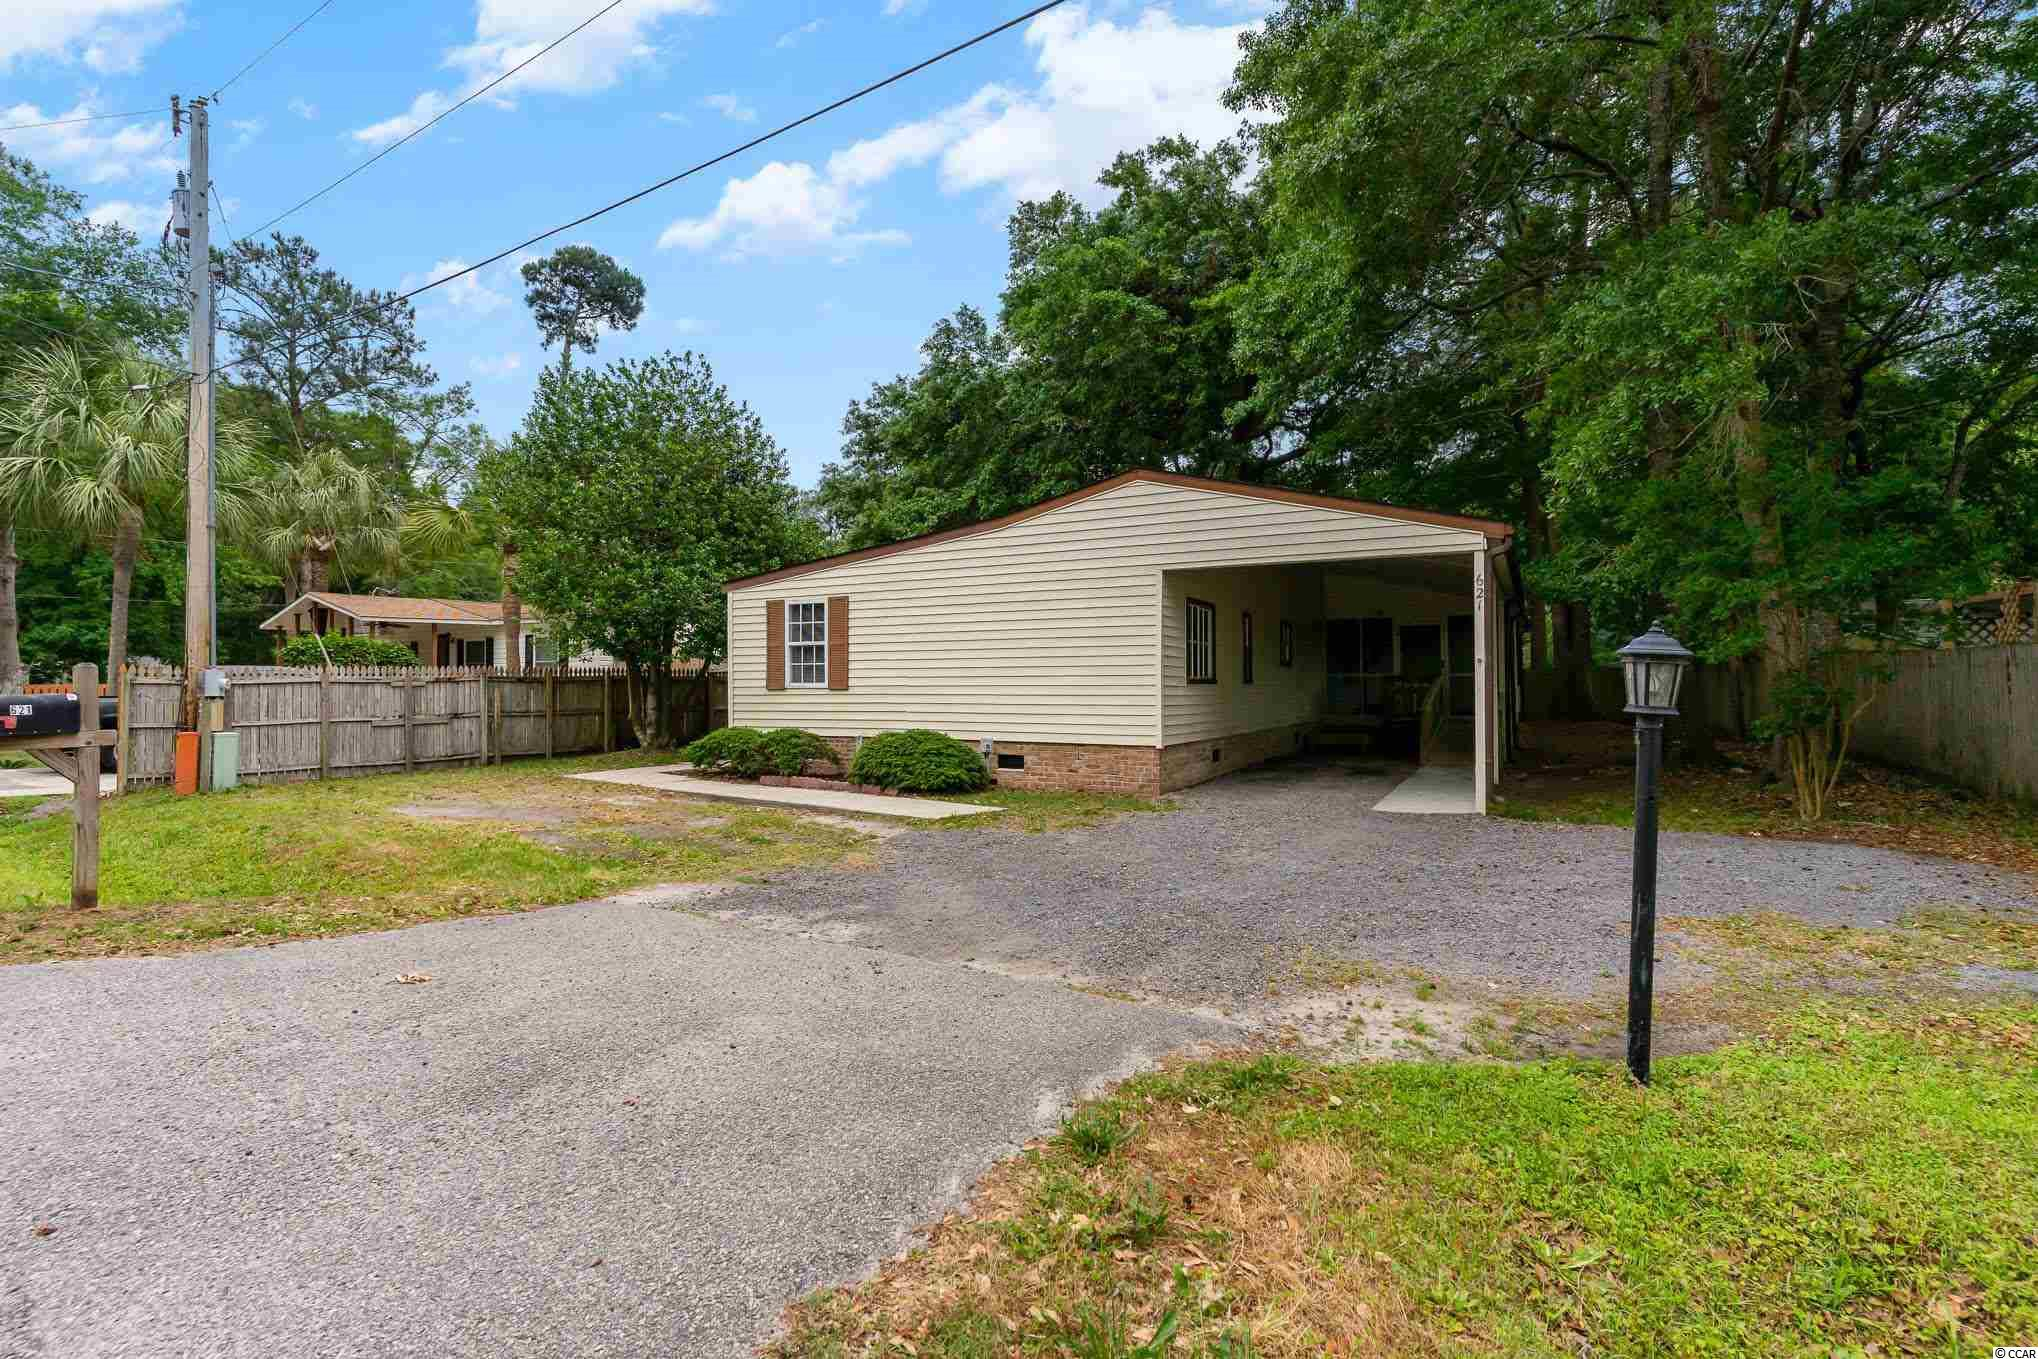 TAKE ADVANTAGE OF THIS PRICE REDUCTION! This Murrells inlet property has it all! Great location, a tranquil setting and NO HOA! Only a short walk or bike ride from the famous Murrells Inlet Marshwalk and restaurants. This manufactured home has a private fenced-in yard, where you can enjoy watching birds while under the shade of a beautiful oak tree where you own the land! Take advantage of this opportunity with no HOA to bring your toys or create an income as an investment property that will offer your clientele the convenience of local restaurants, Brookgreen Gardens, Huntington Beach State Park, and Garden City Beach just minutes away. Enter the home with easy access from each side. This home boasts two covered porches, where you can enjoy your coffee in a peaceful setting. This home has 4 bedrooms with 2 full baths and a large open area that combines the kitchen and living area. Covered carport perfect for your cars, boat, or RV. Additional parking to the side.  Don't miss this opportunity to have all the benefits of Murrells Inlet with this property.   **Sold AS IS, Buyer to verify measurements